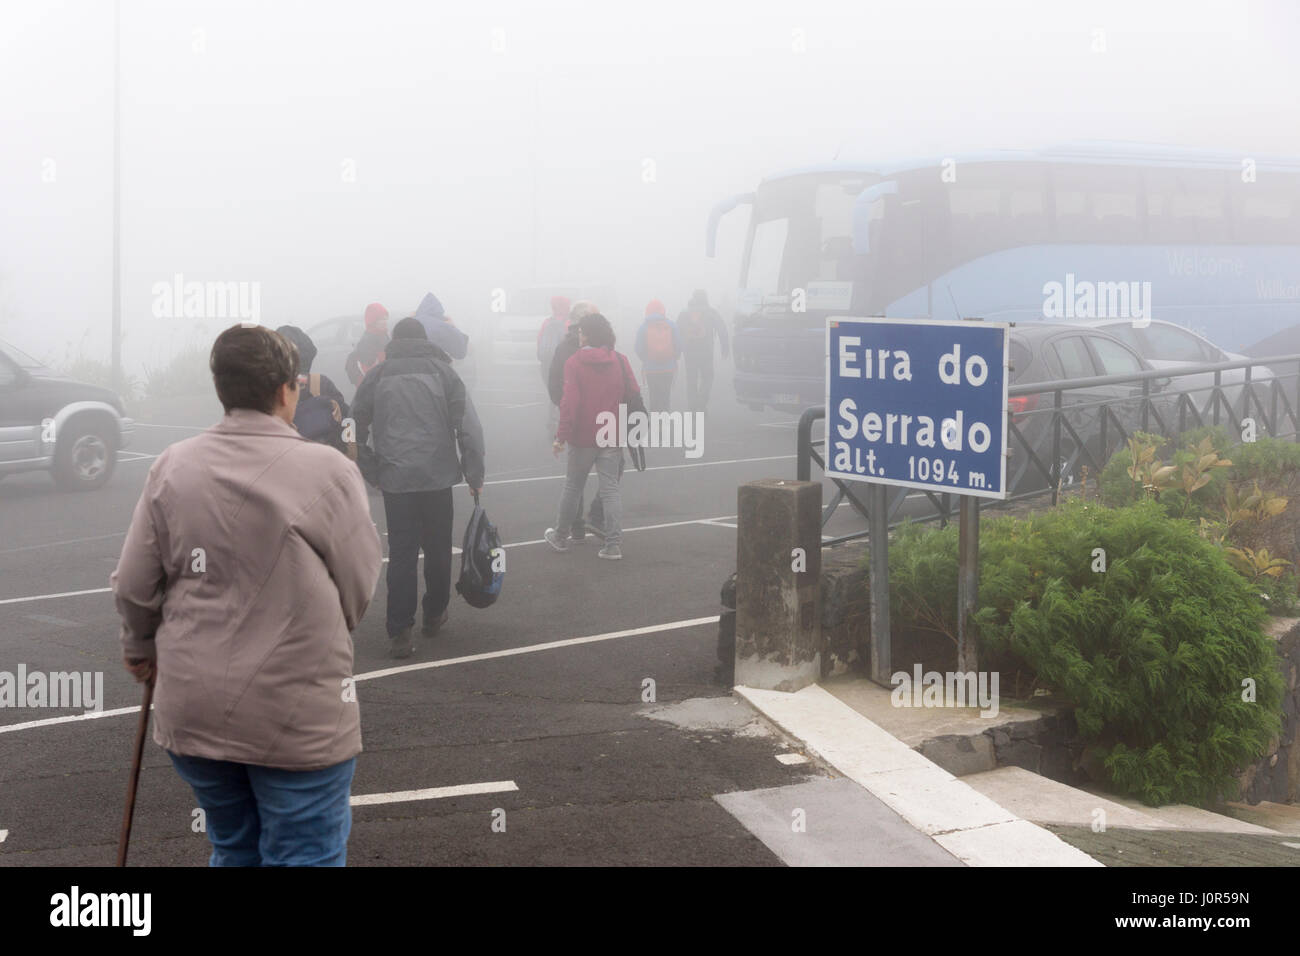 Low visibility from mist and rain on New Year's Eve at Eira do Serrado viewpoint, Madeira - Stock Image